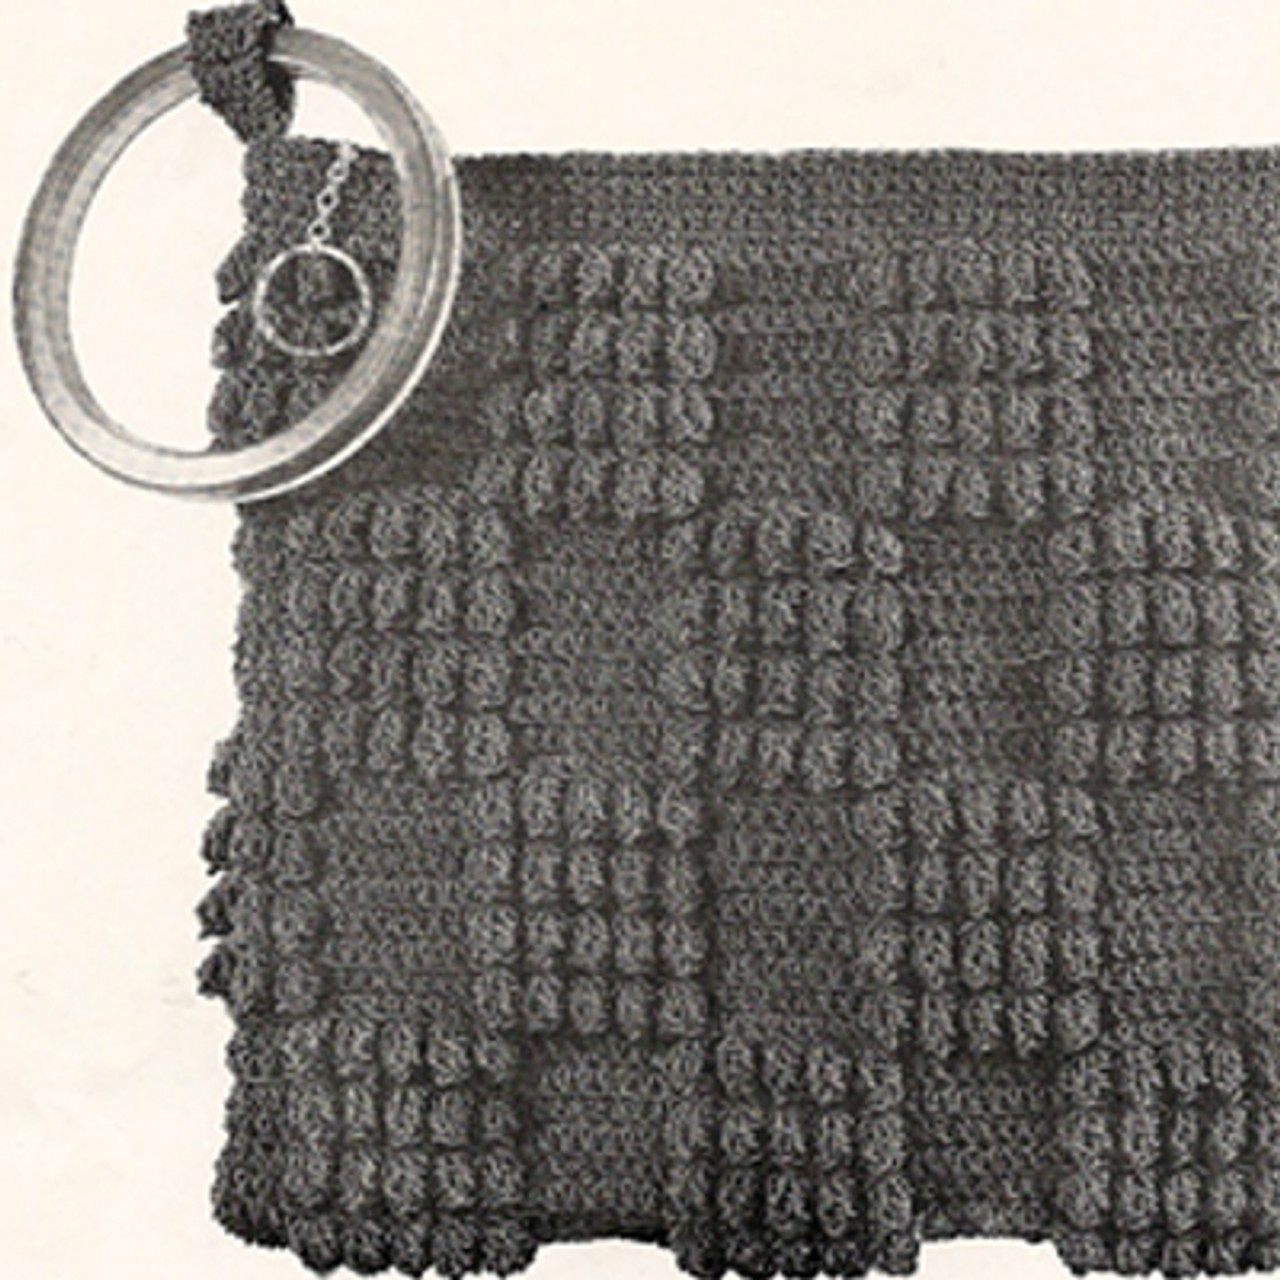 Crochet Checkerboard Clutch Pattern called Monte Carlo